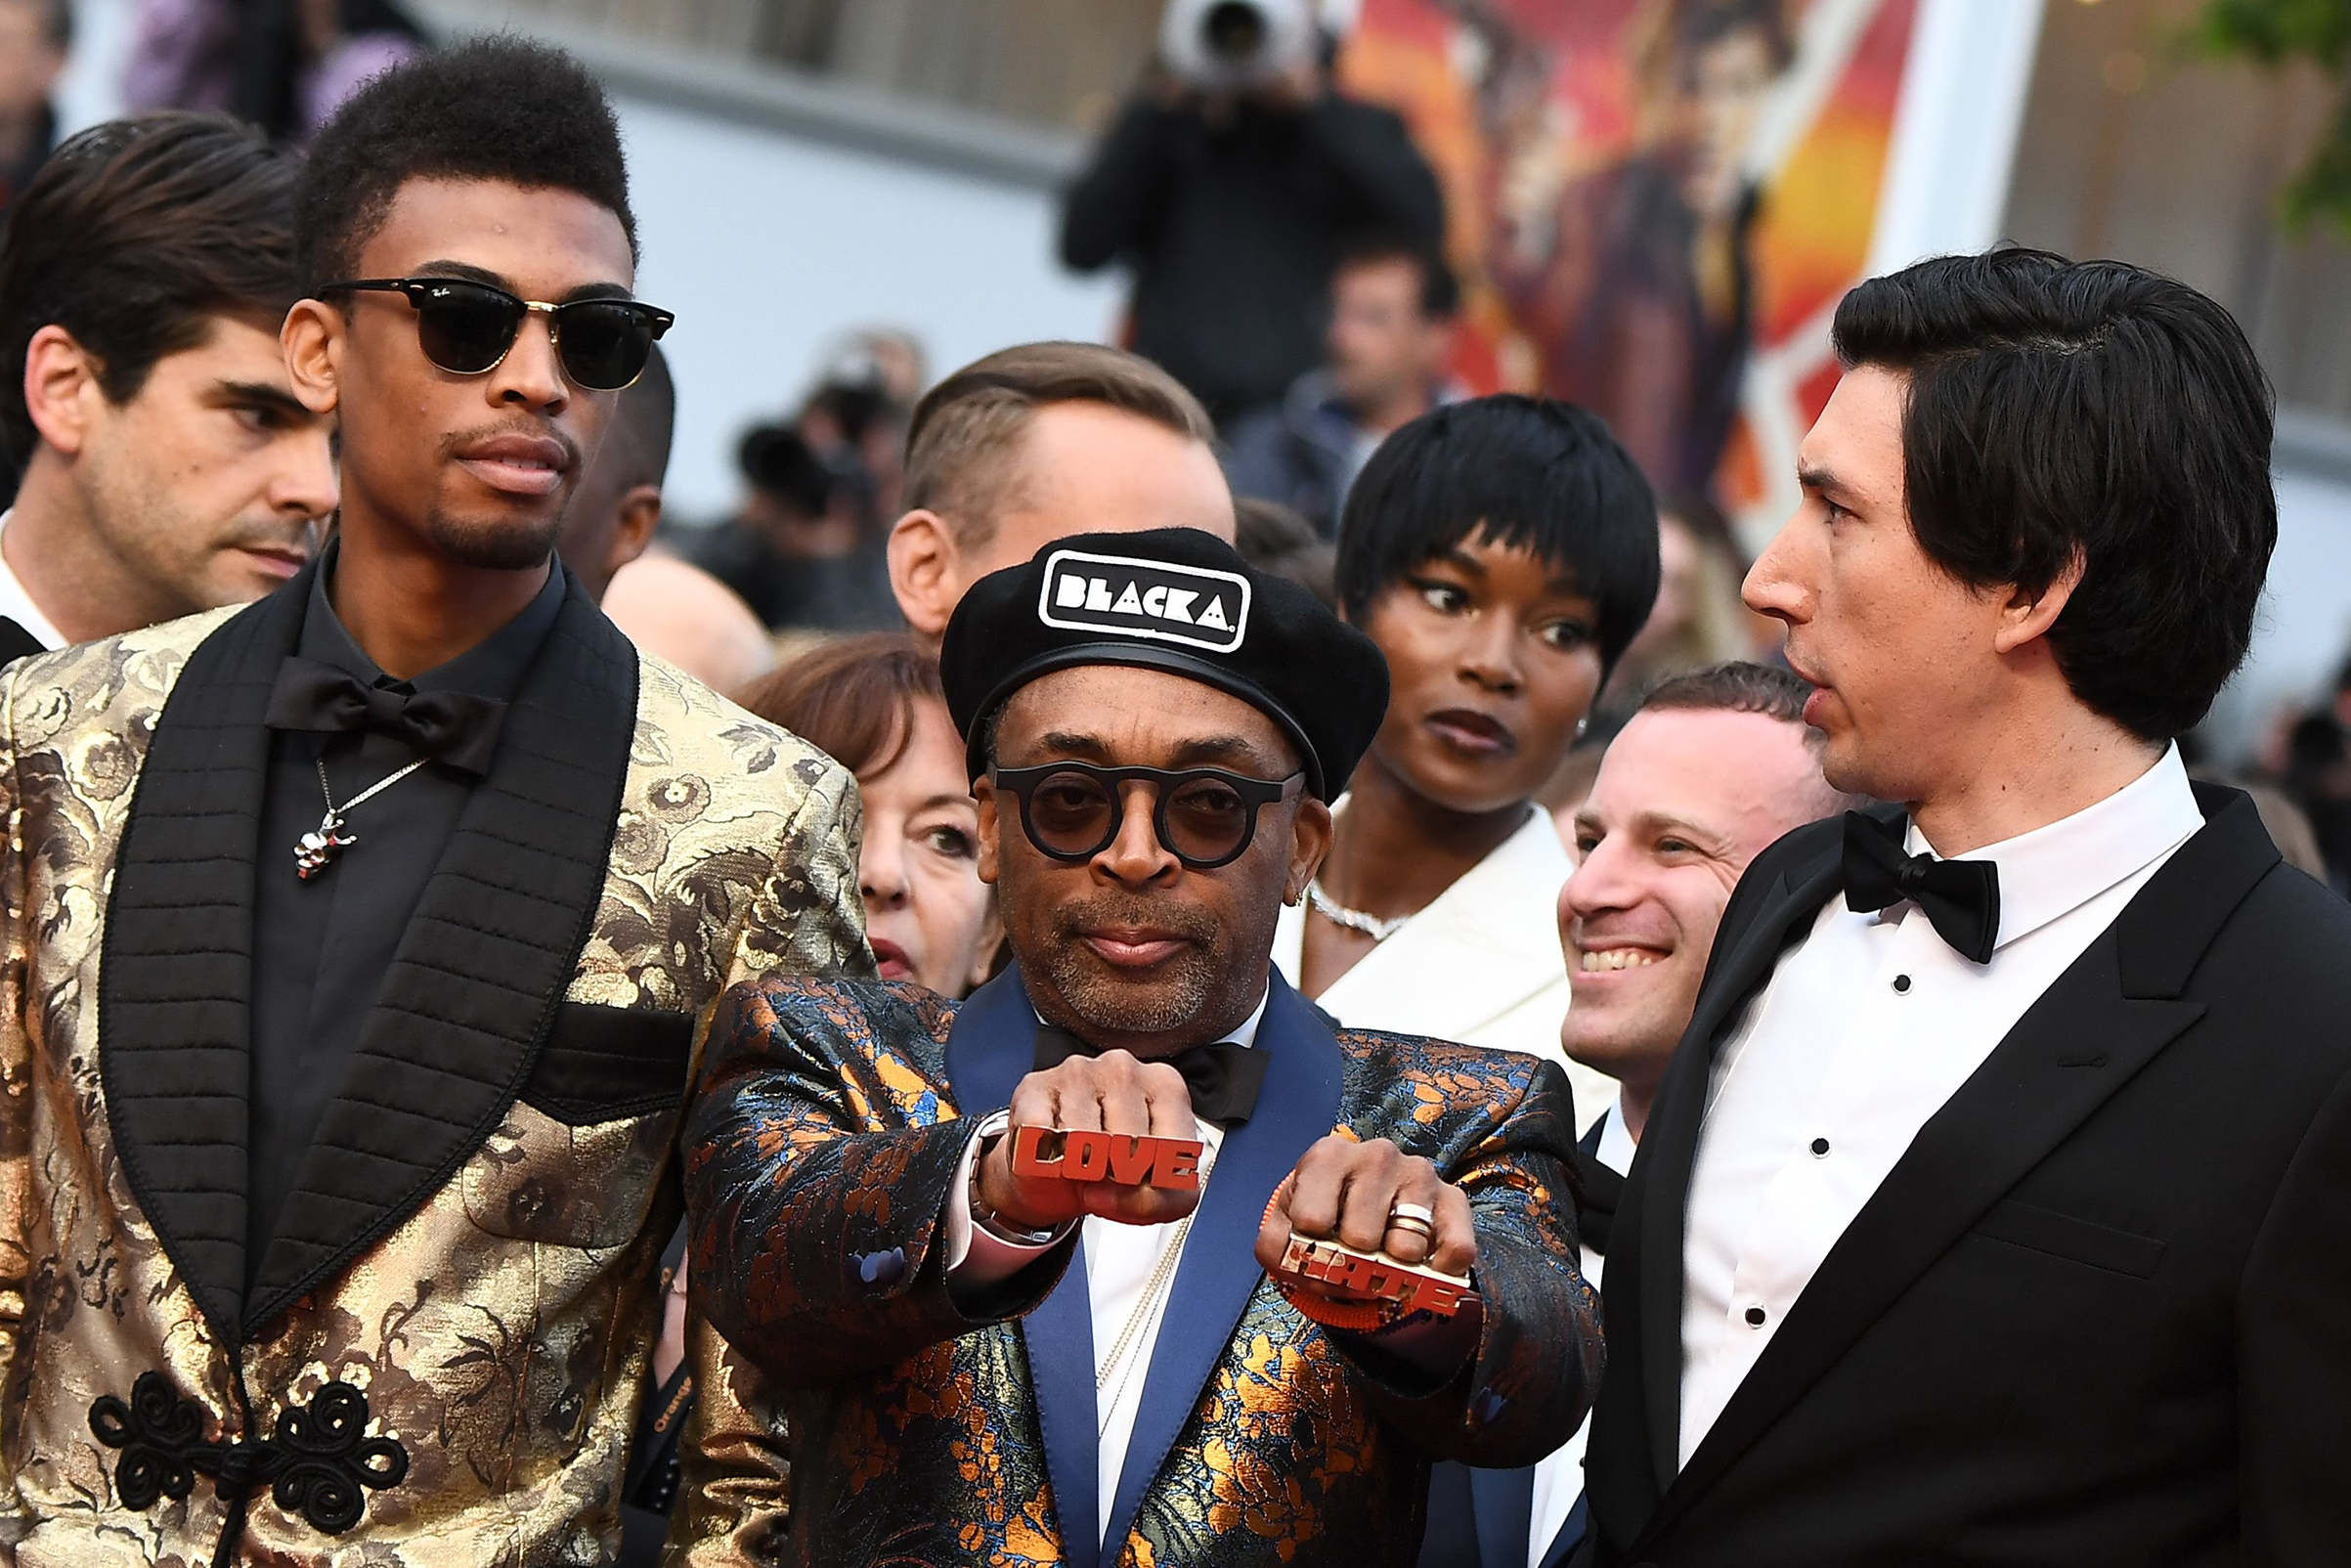 Director Spike Lee and actor Adam Driver, right, arrive for the screening of  BlacKkKlansman  at the Cannes Film Festival in southern France on May 14, 2018.